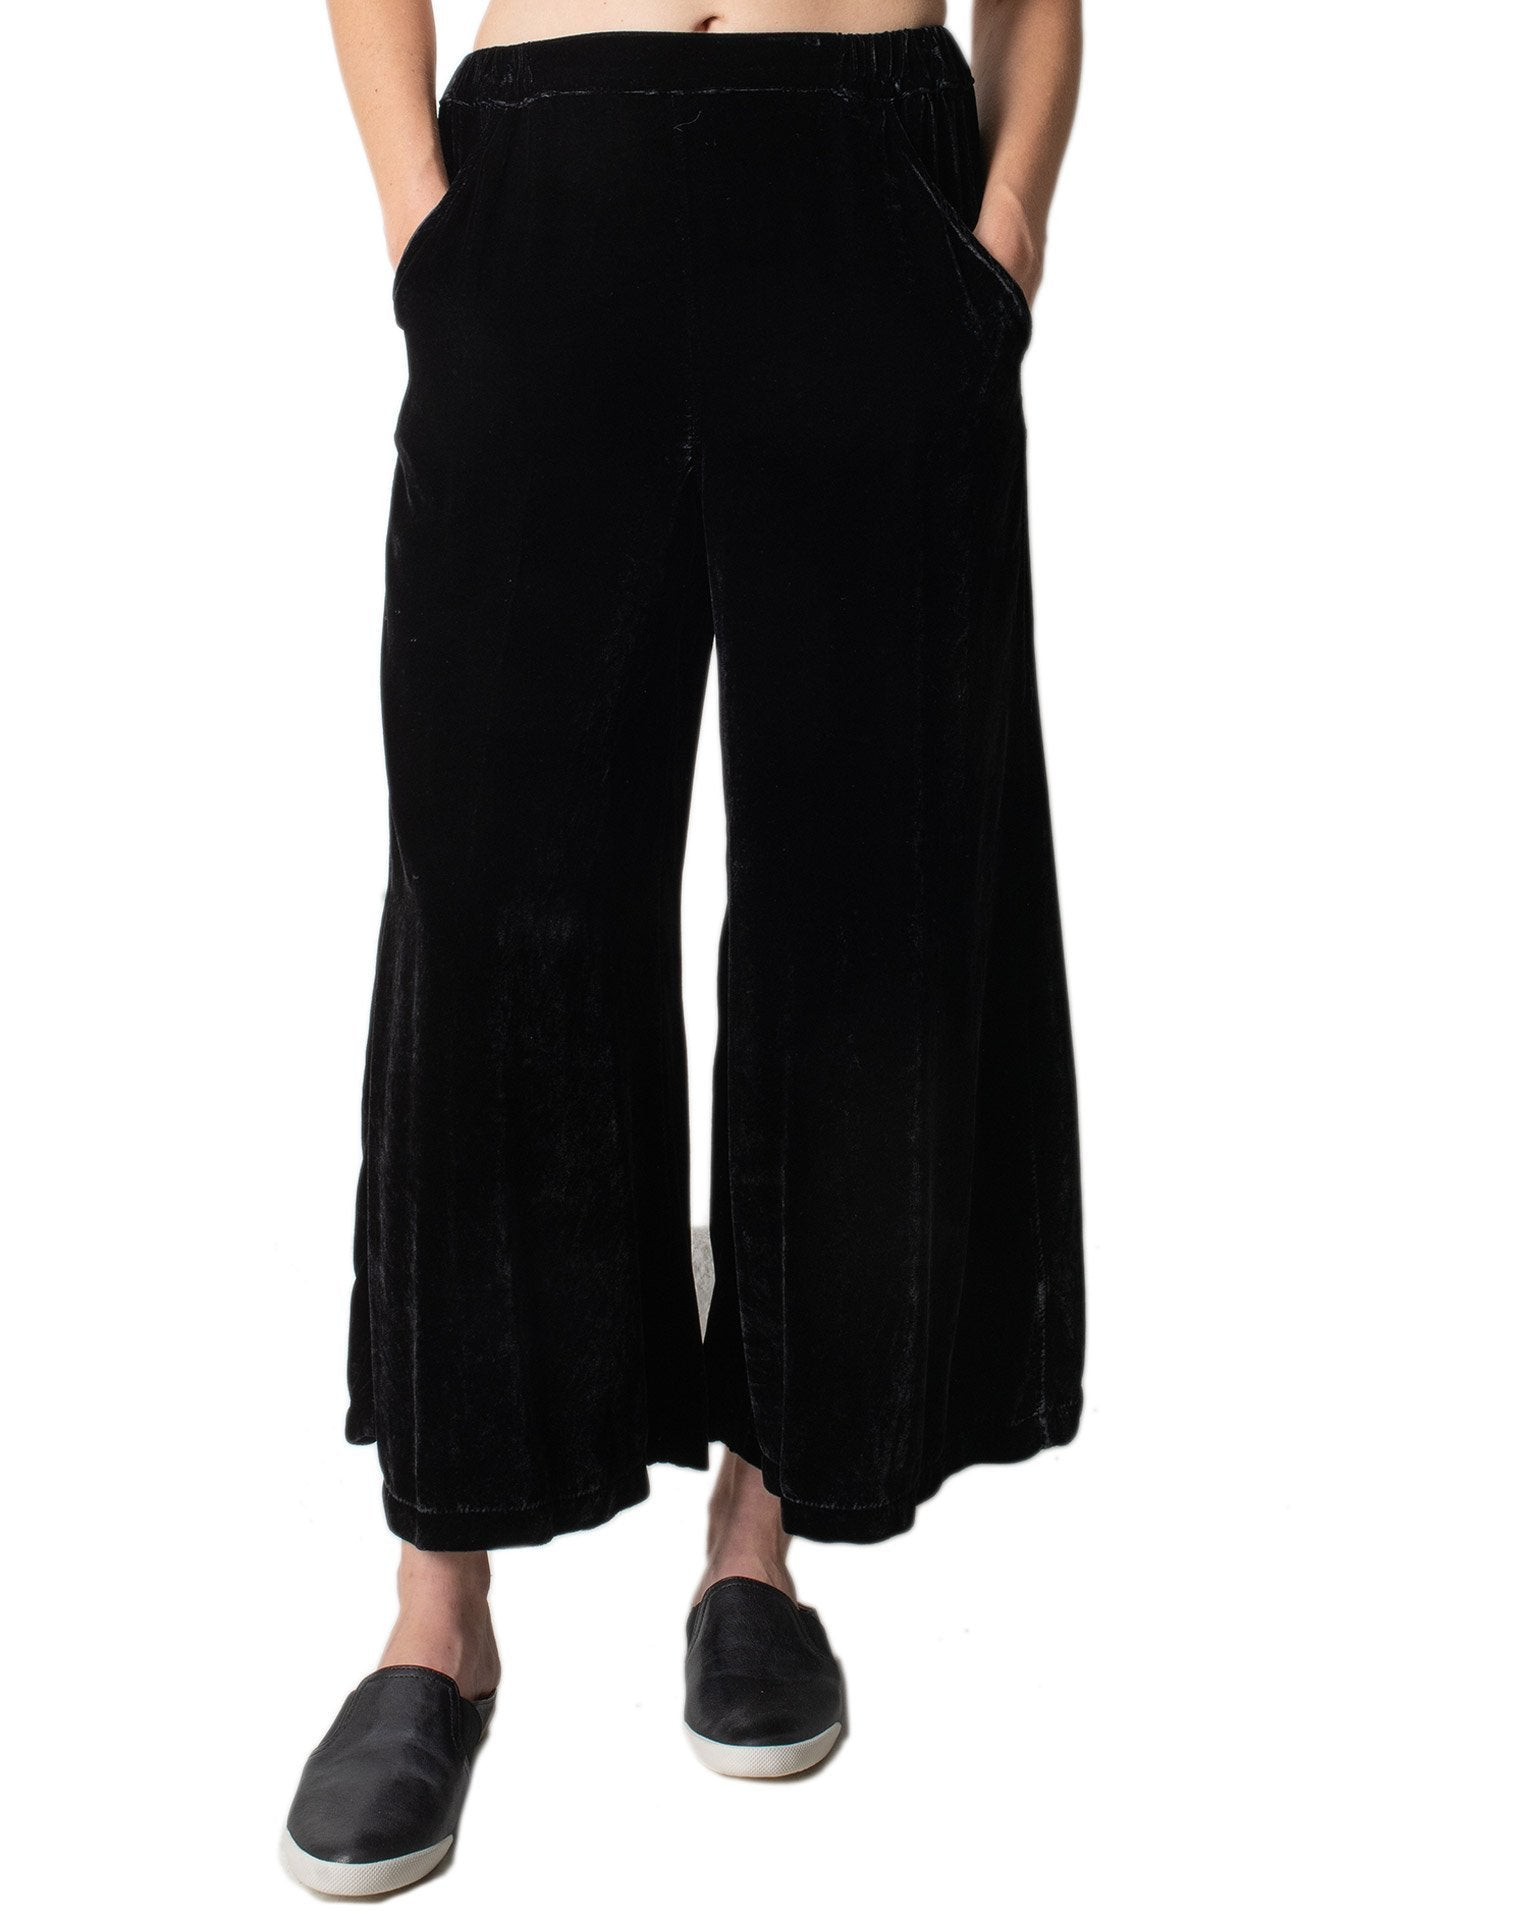 CP Shades Clothing Black / XS Cropped Wendy Pant- Silk Velvet